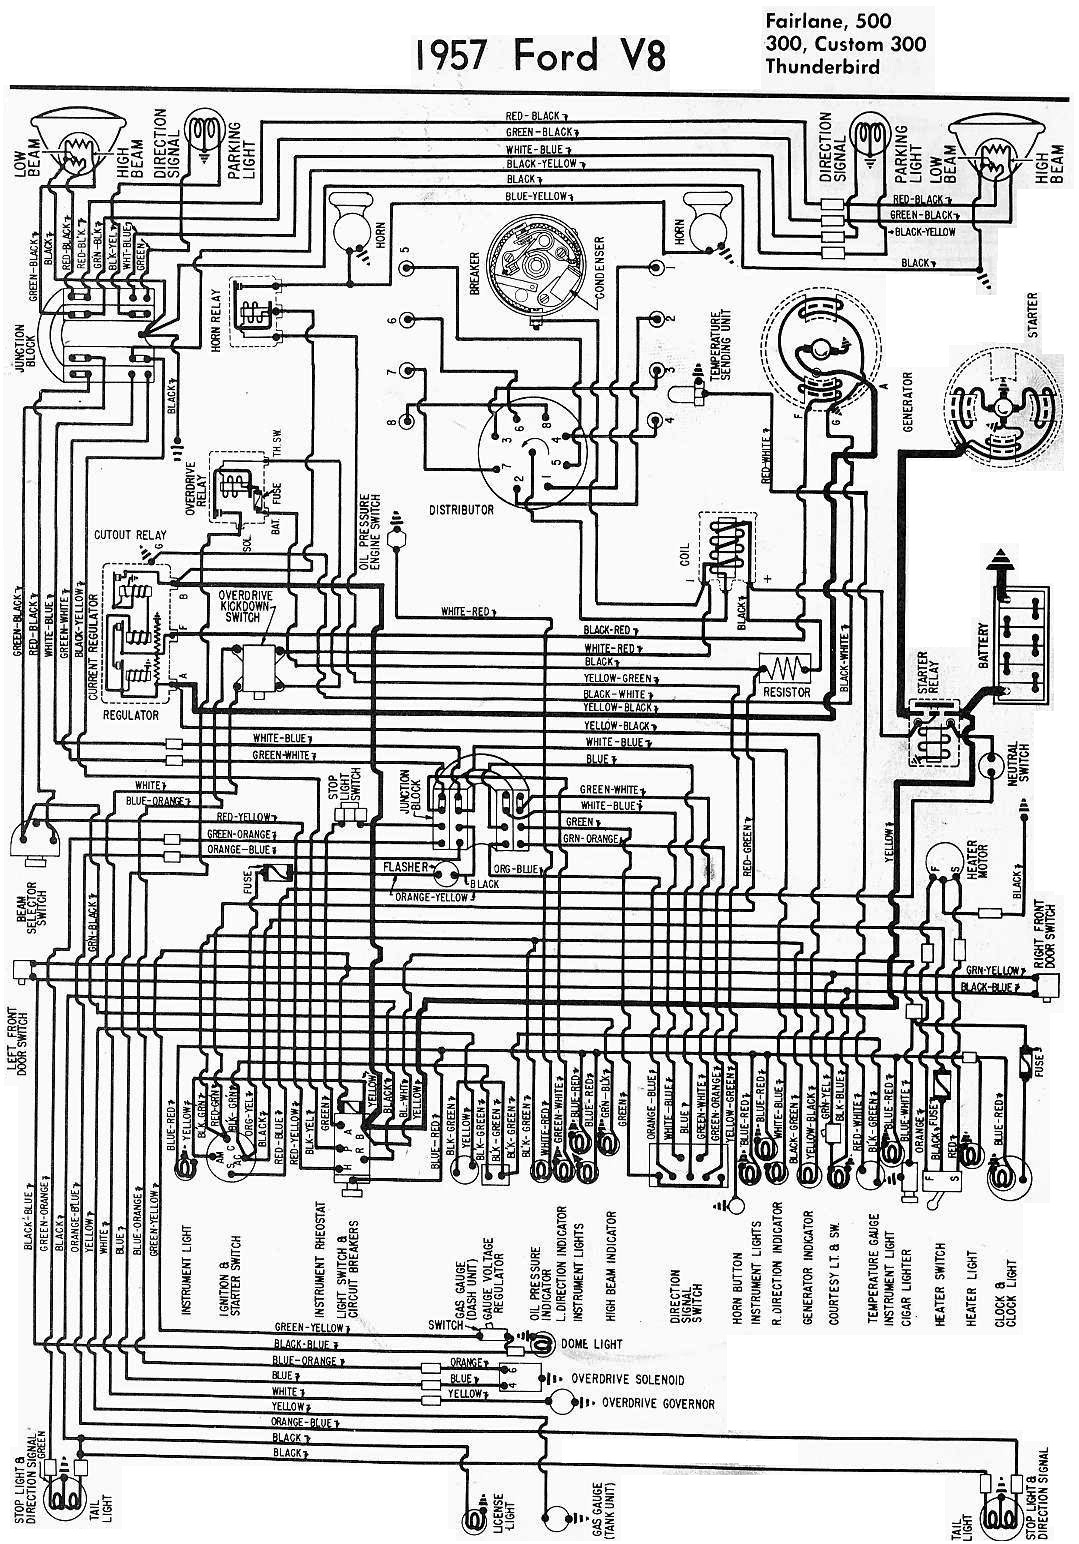 1964 Ford Ranchero Ignition Wiring Diagram Library Falcon Galaxie 500 Explained Diagrams